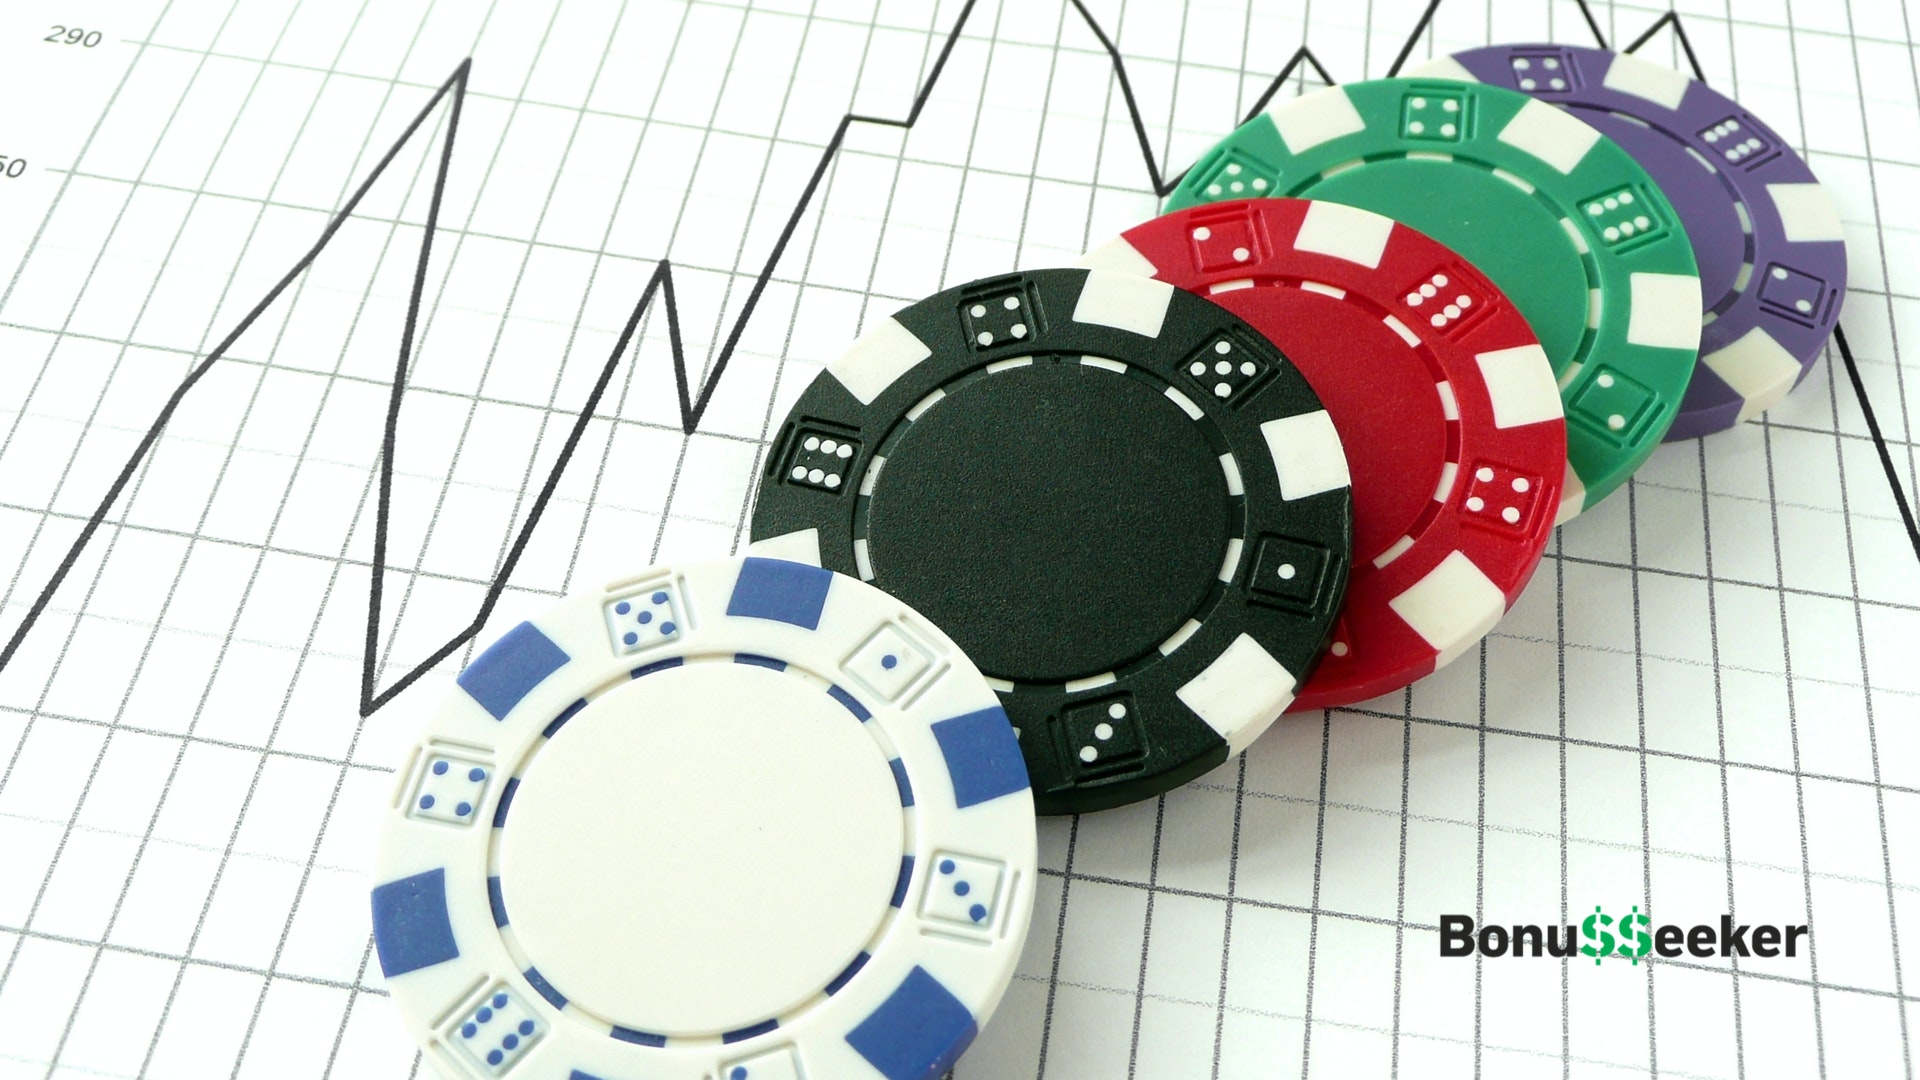 NJ Online Casino - Official Revenue and Tax Report